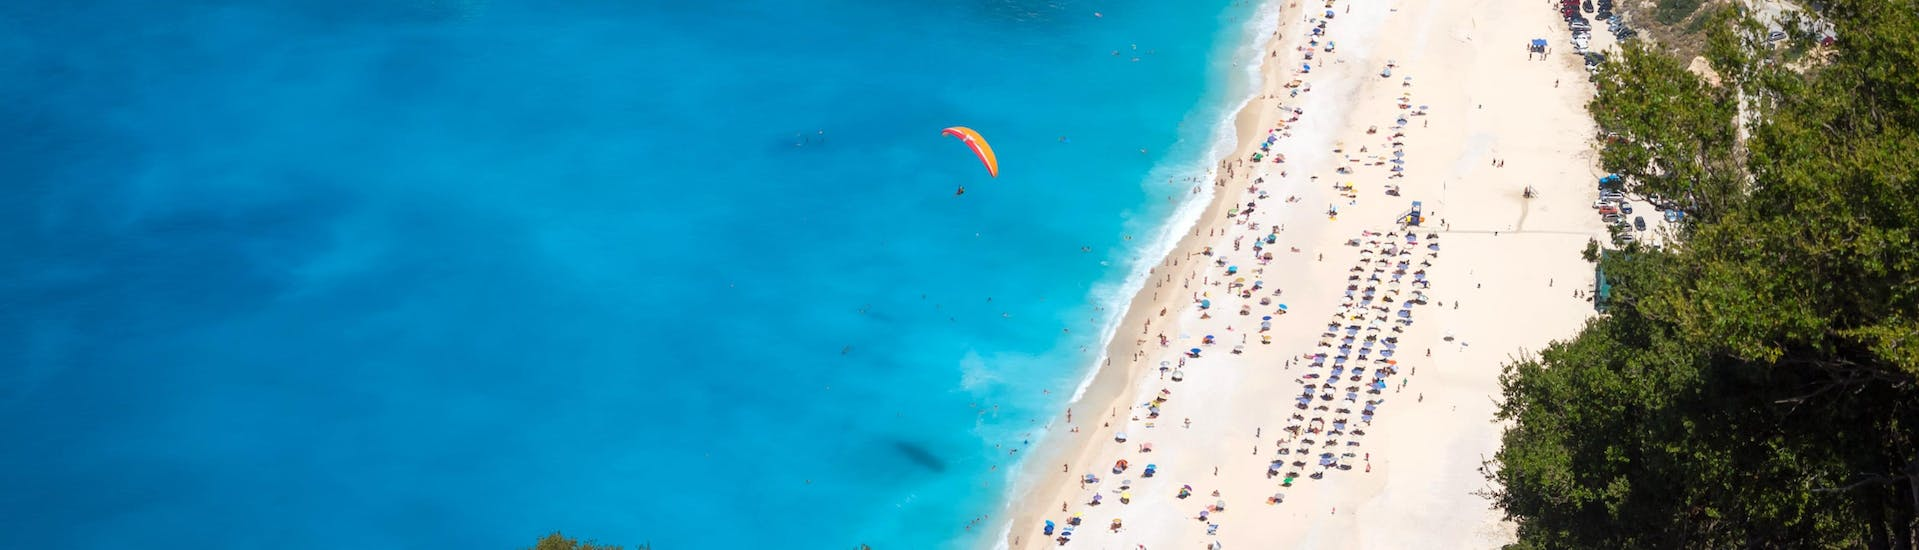 A tandem master and his passenger are sailing through cloudy skies while paragliding in Kefalonia.